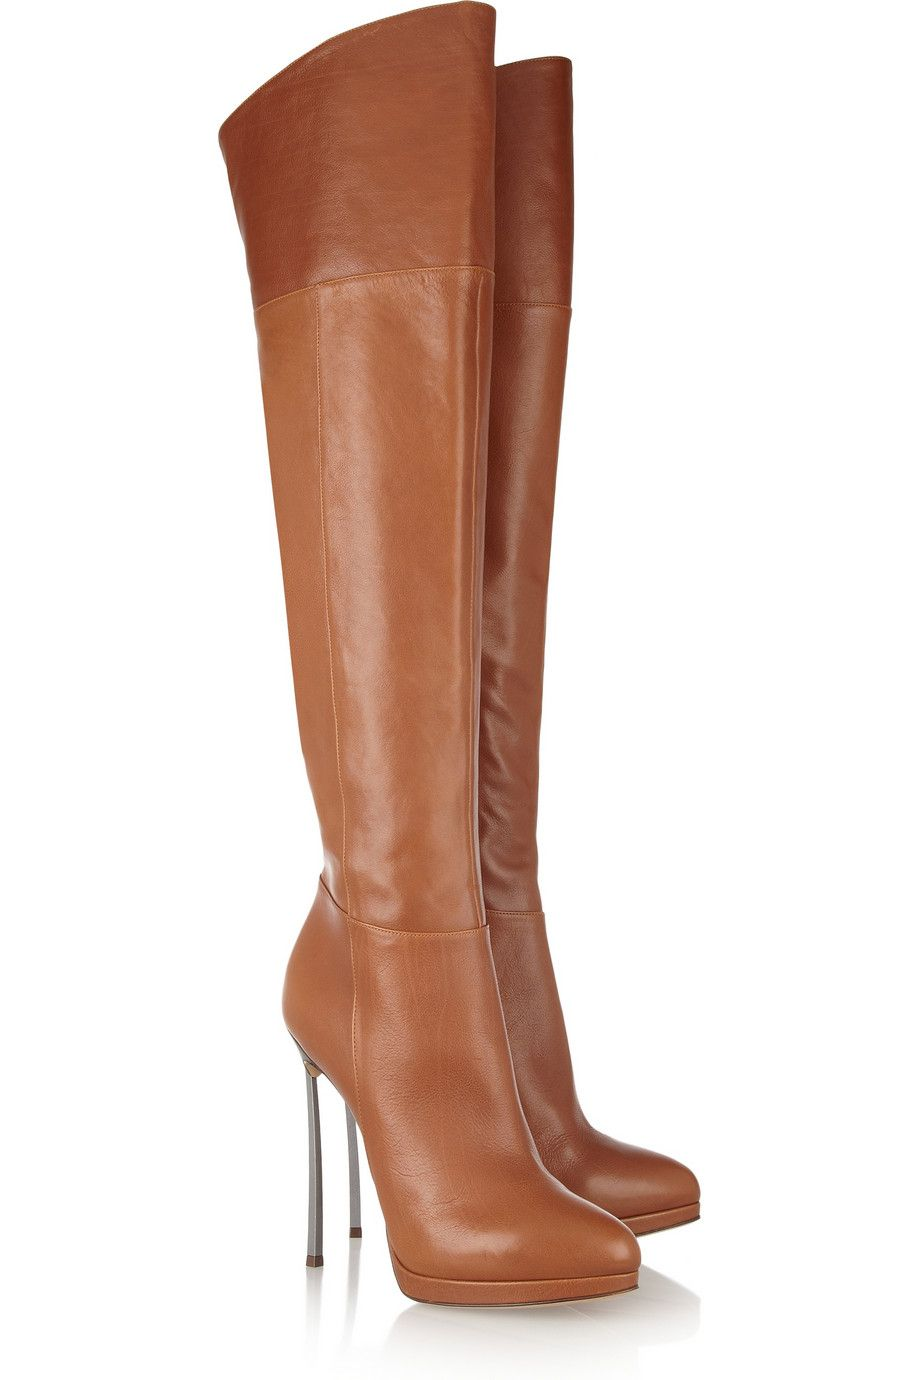 14693f55209 Leather thigh boots by Casadei- on clearance for  455 ha ha in my dreams.  Gorgeous though!